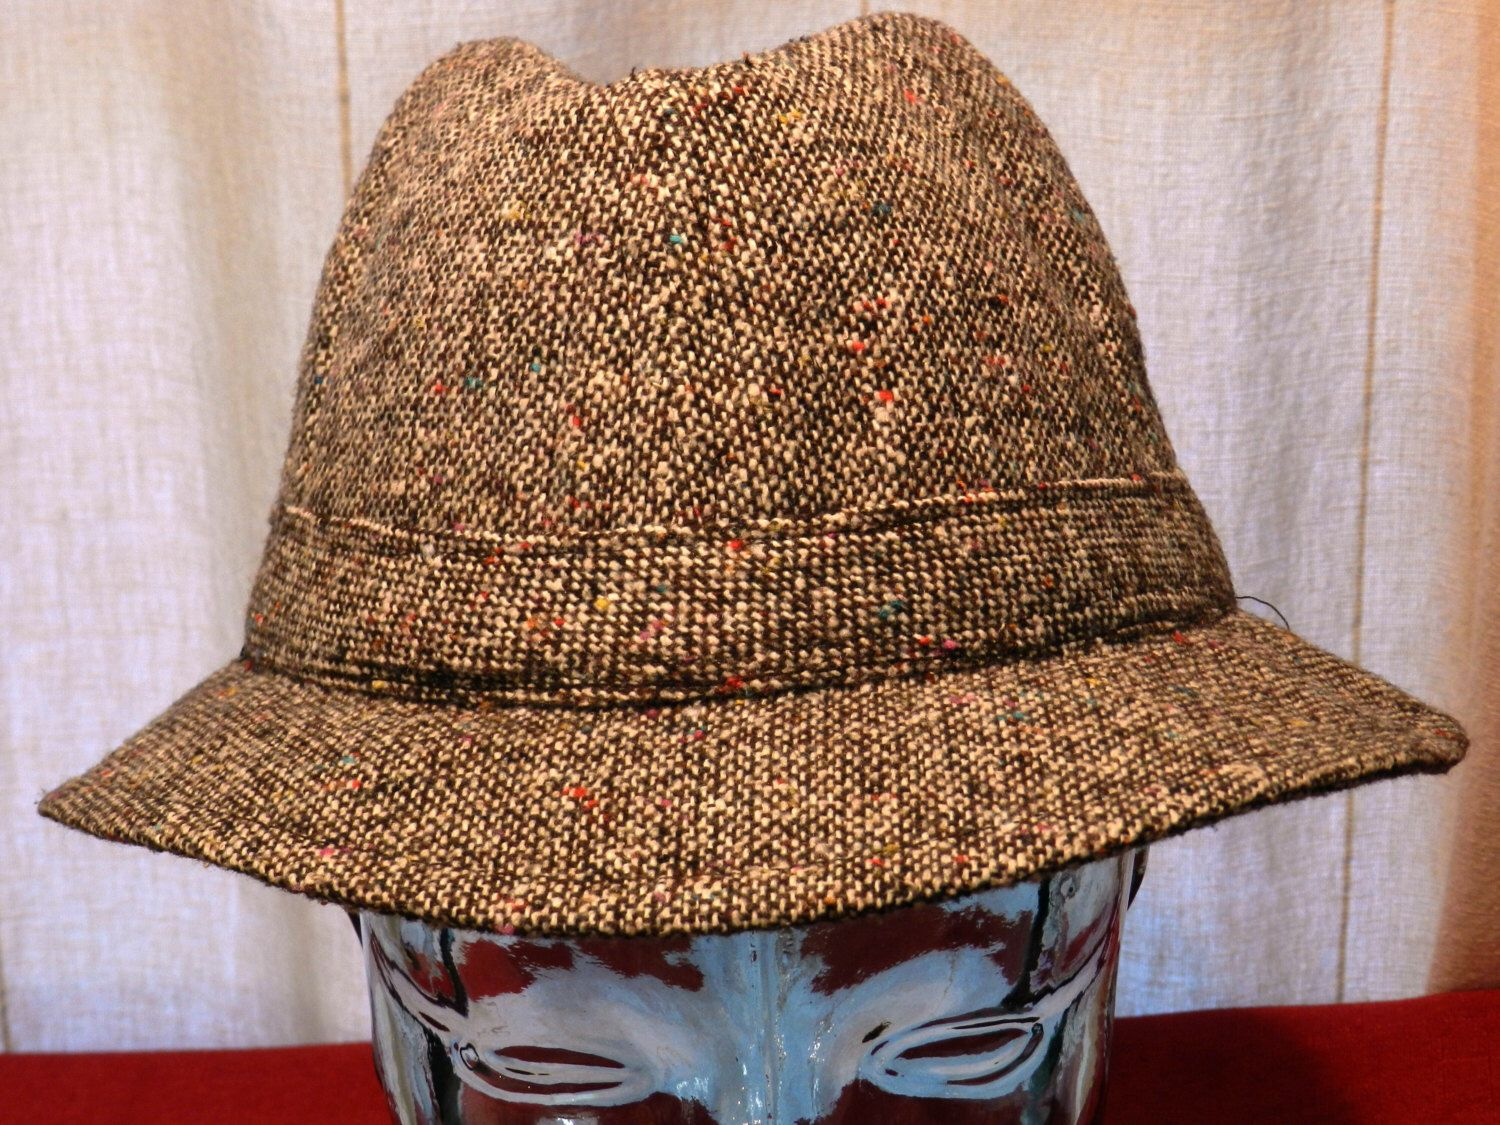 8f5ae67190a36 Vintage Tote s Brown Tone Tweed Fedora Rain Hat Size Medium 00657 by  NWAttic on Etsy https